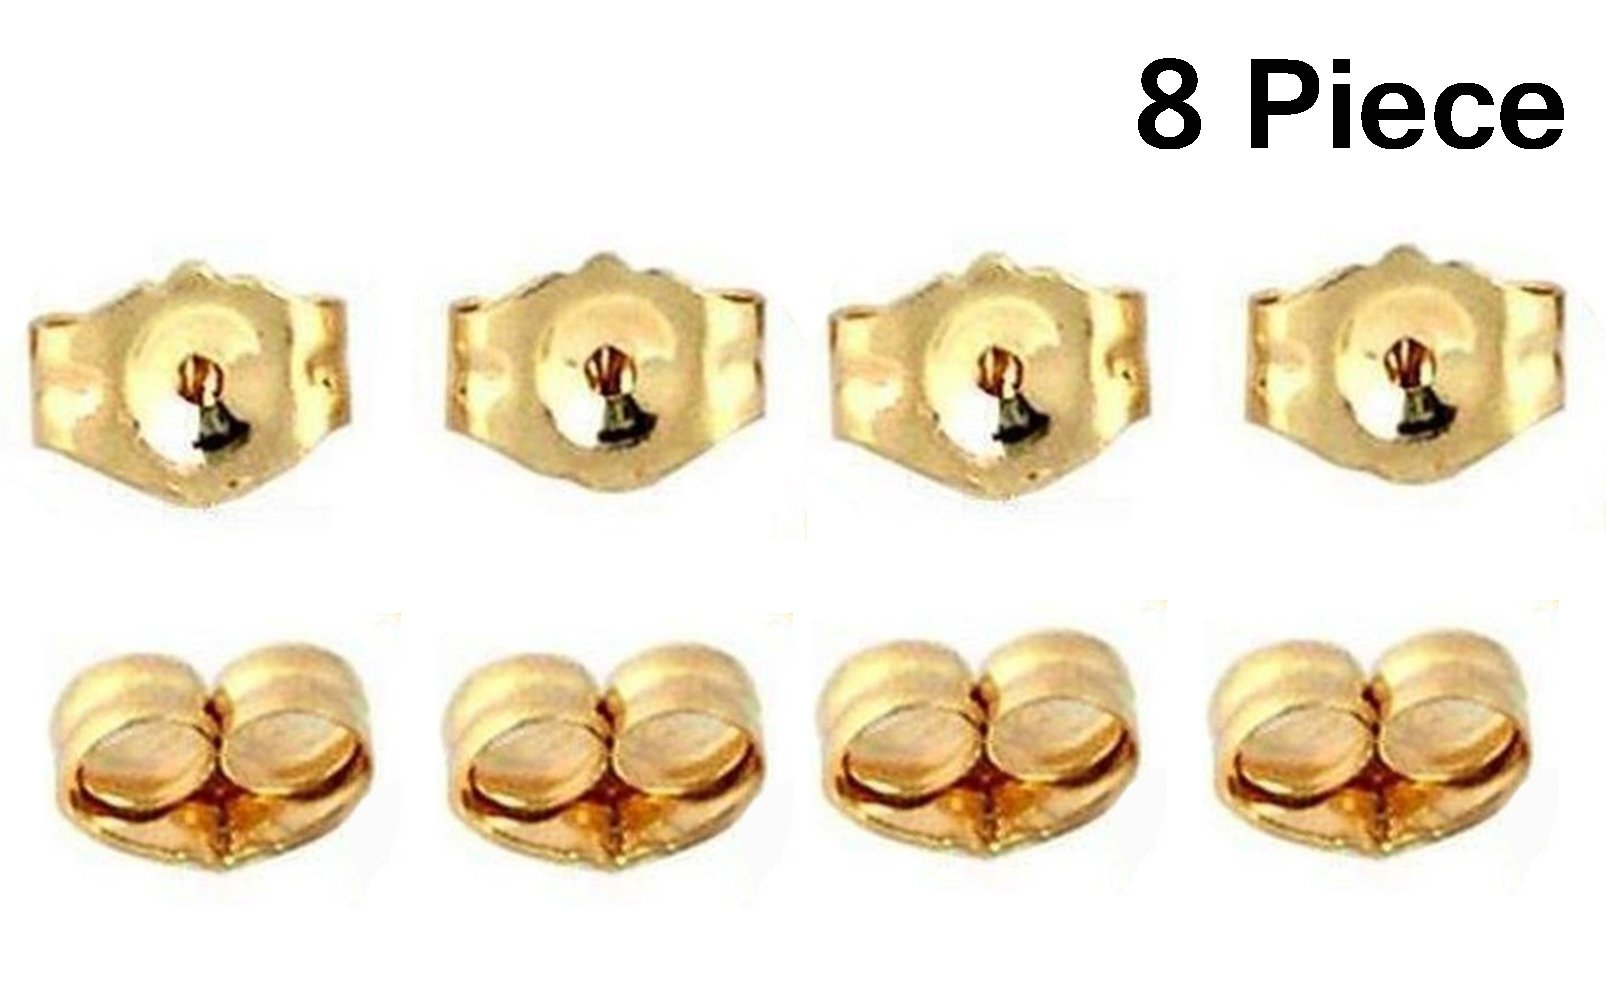 8-Piece 14K Yellow Gold Earring Backs Replacement Earring Backs by NIGHT-GRING